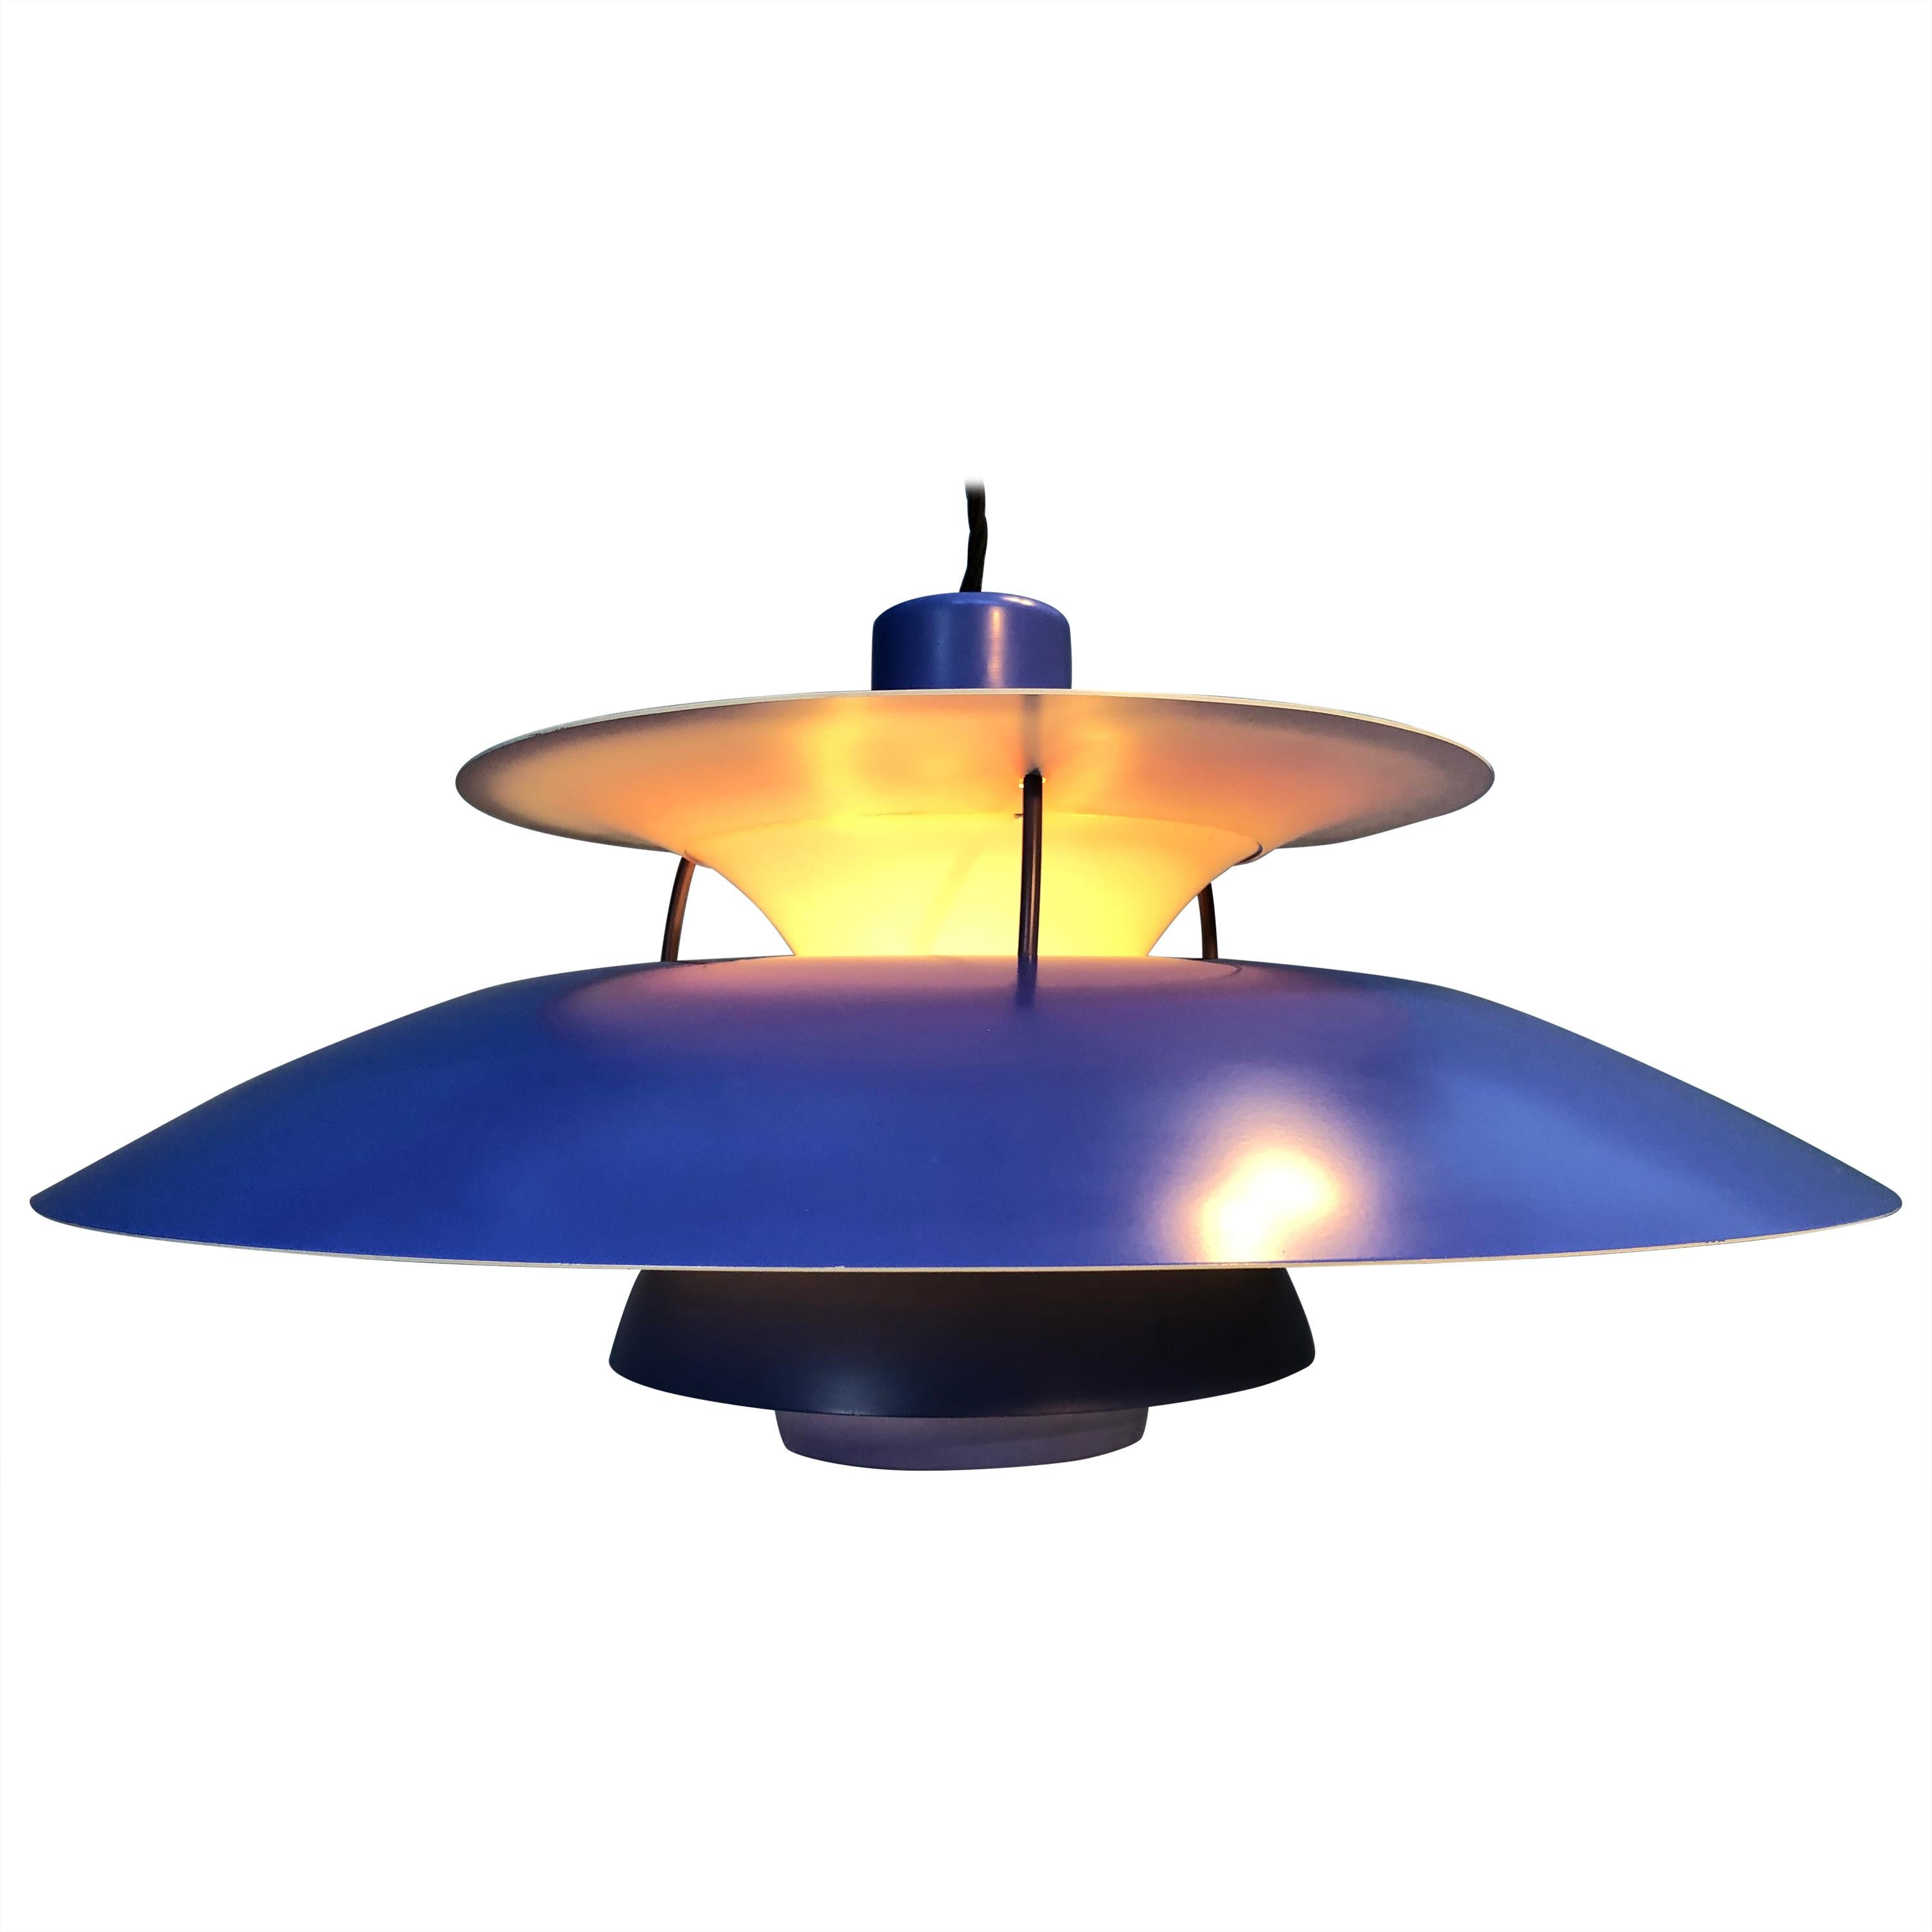 Iconic Vintage Poul Henningsen 2nd Edition PH5 Chandelier Pendant Lamp from 1959